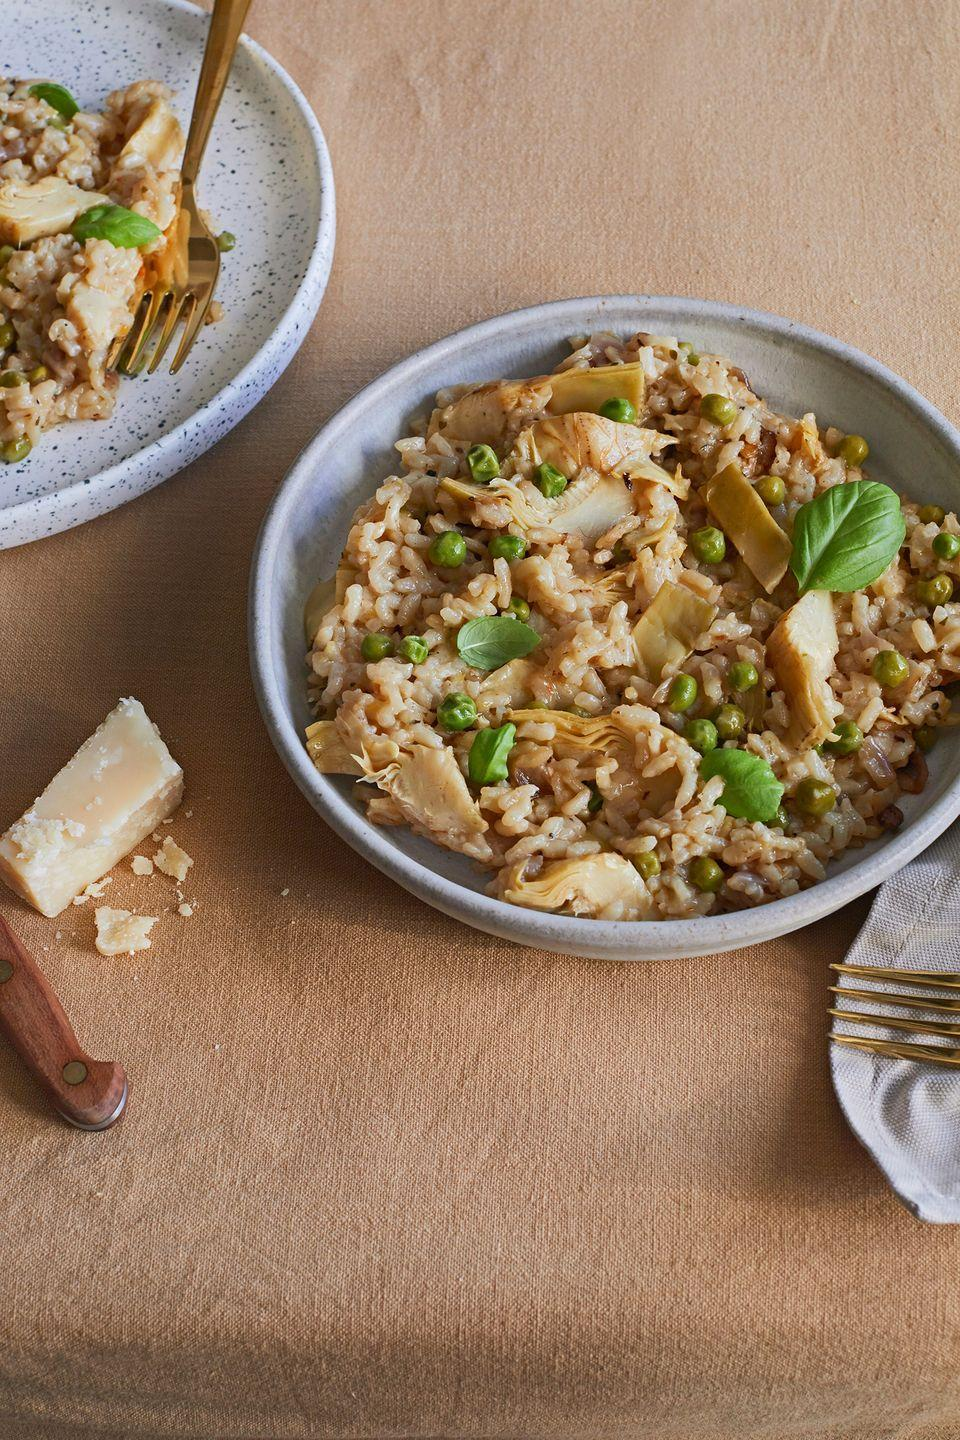 """<p>We love this artichoke and pea <a href=""""https://www.delish.com/uk/cooking/recipes/a34121193/mushroom-asparagus-risotto/"""" rel=""""nofollow noopener"""" target=""""_blank"""" data-ylk=""""slk:risotto"""" class=""""link rapid-noclick-resp"""">risotto</a>. The artichokes in this dish really make this easy risotto recipe feel like an indulgent treat. Use chargrilled <a href=""""https://www.delish.com/uk/cooking/recipes/a35040907/chicken-spinach-and-artichoke-rigatoni-recipe/"""" rel=""""nofollow noopener"""" target=""""_blank"""" data-ylk=""""slk:artichoke"""" class=""""link rapid-noclick-resp"""">artichoke</a> hearts if you can find them for an even better flavour. Lemon and basil lift all the flavours beautifully in this dish.</p><p>Get the <a href=""""https://www.delish.com/uk/cooking/recipes/a35291295/artichoke-pea-risotto/"""" rel=""""nofollow noopener"""" target=""""_blank"""" data-ylk=""""slk:Artichoke & Pea Risotto"""" class=""""link rapid-noclick-resp"""">Artichoke & Pea Risotto</a> recipe. </p>"""